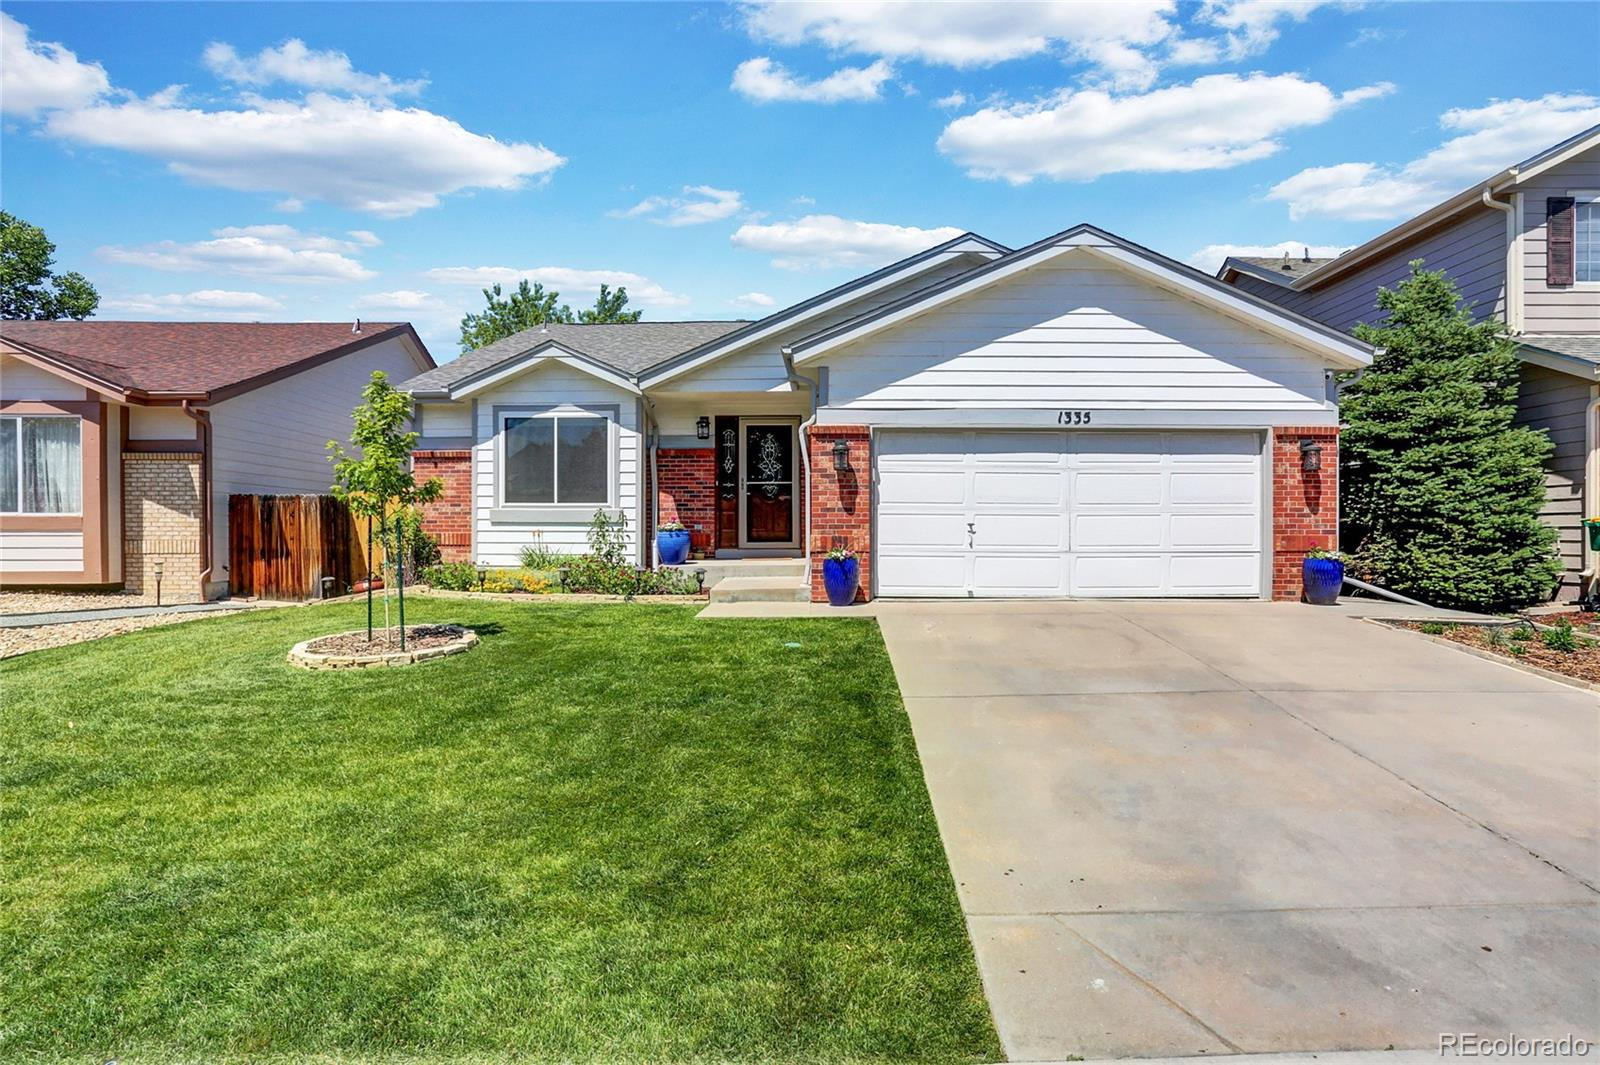 MLS# 7737811 - 1 - 1335 W 133rd Way, Westminster, CO 80234